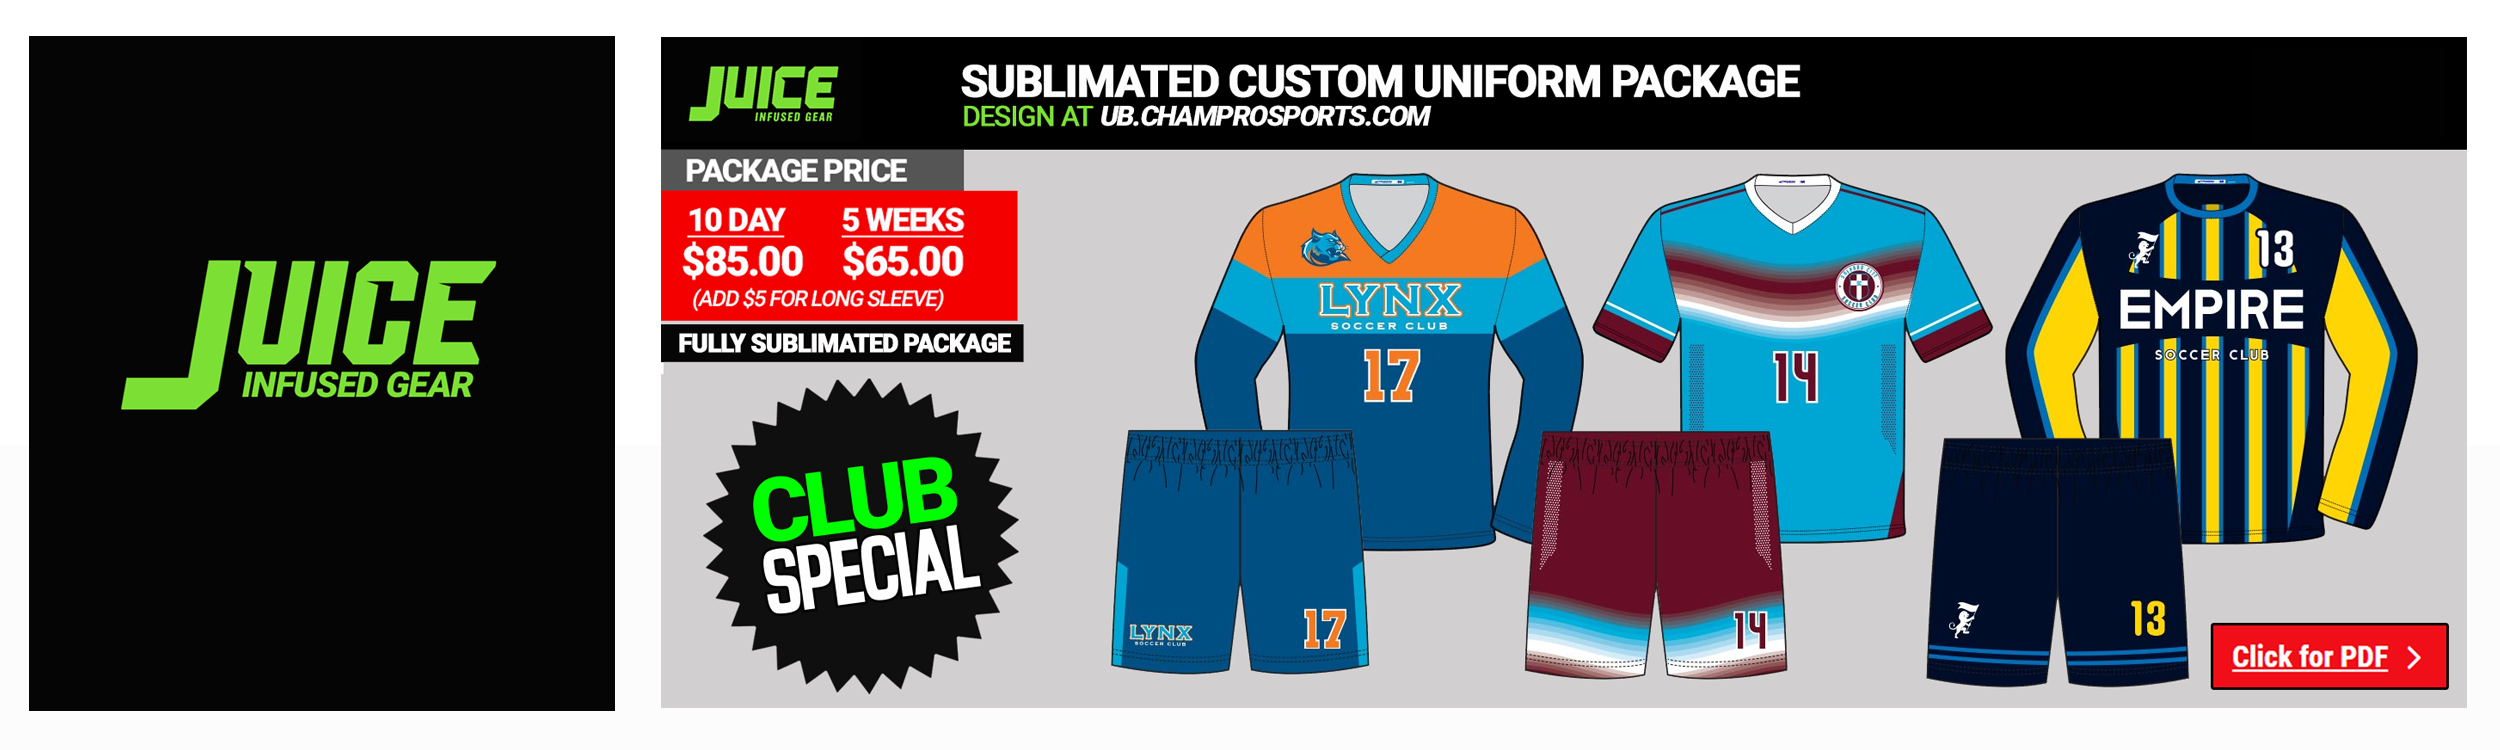 Sublimated Soccer Uniform Packages